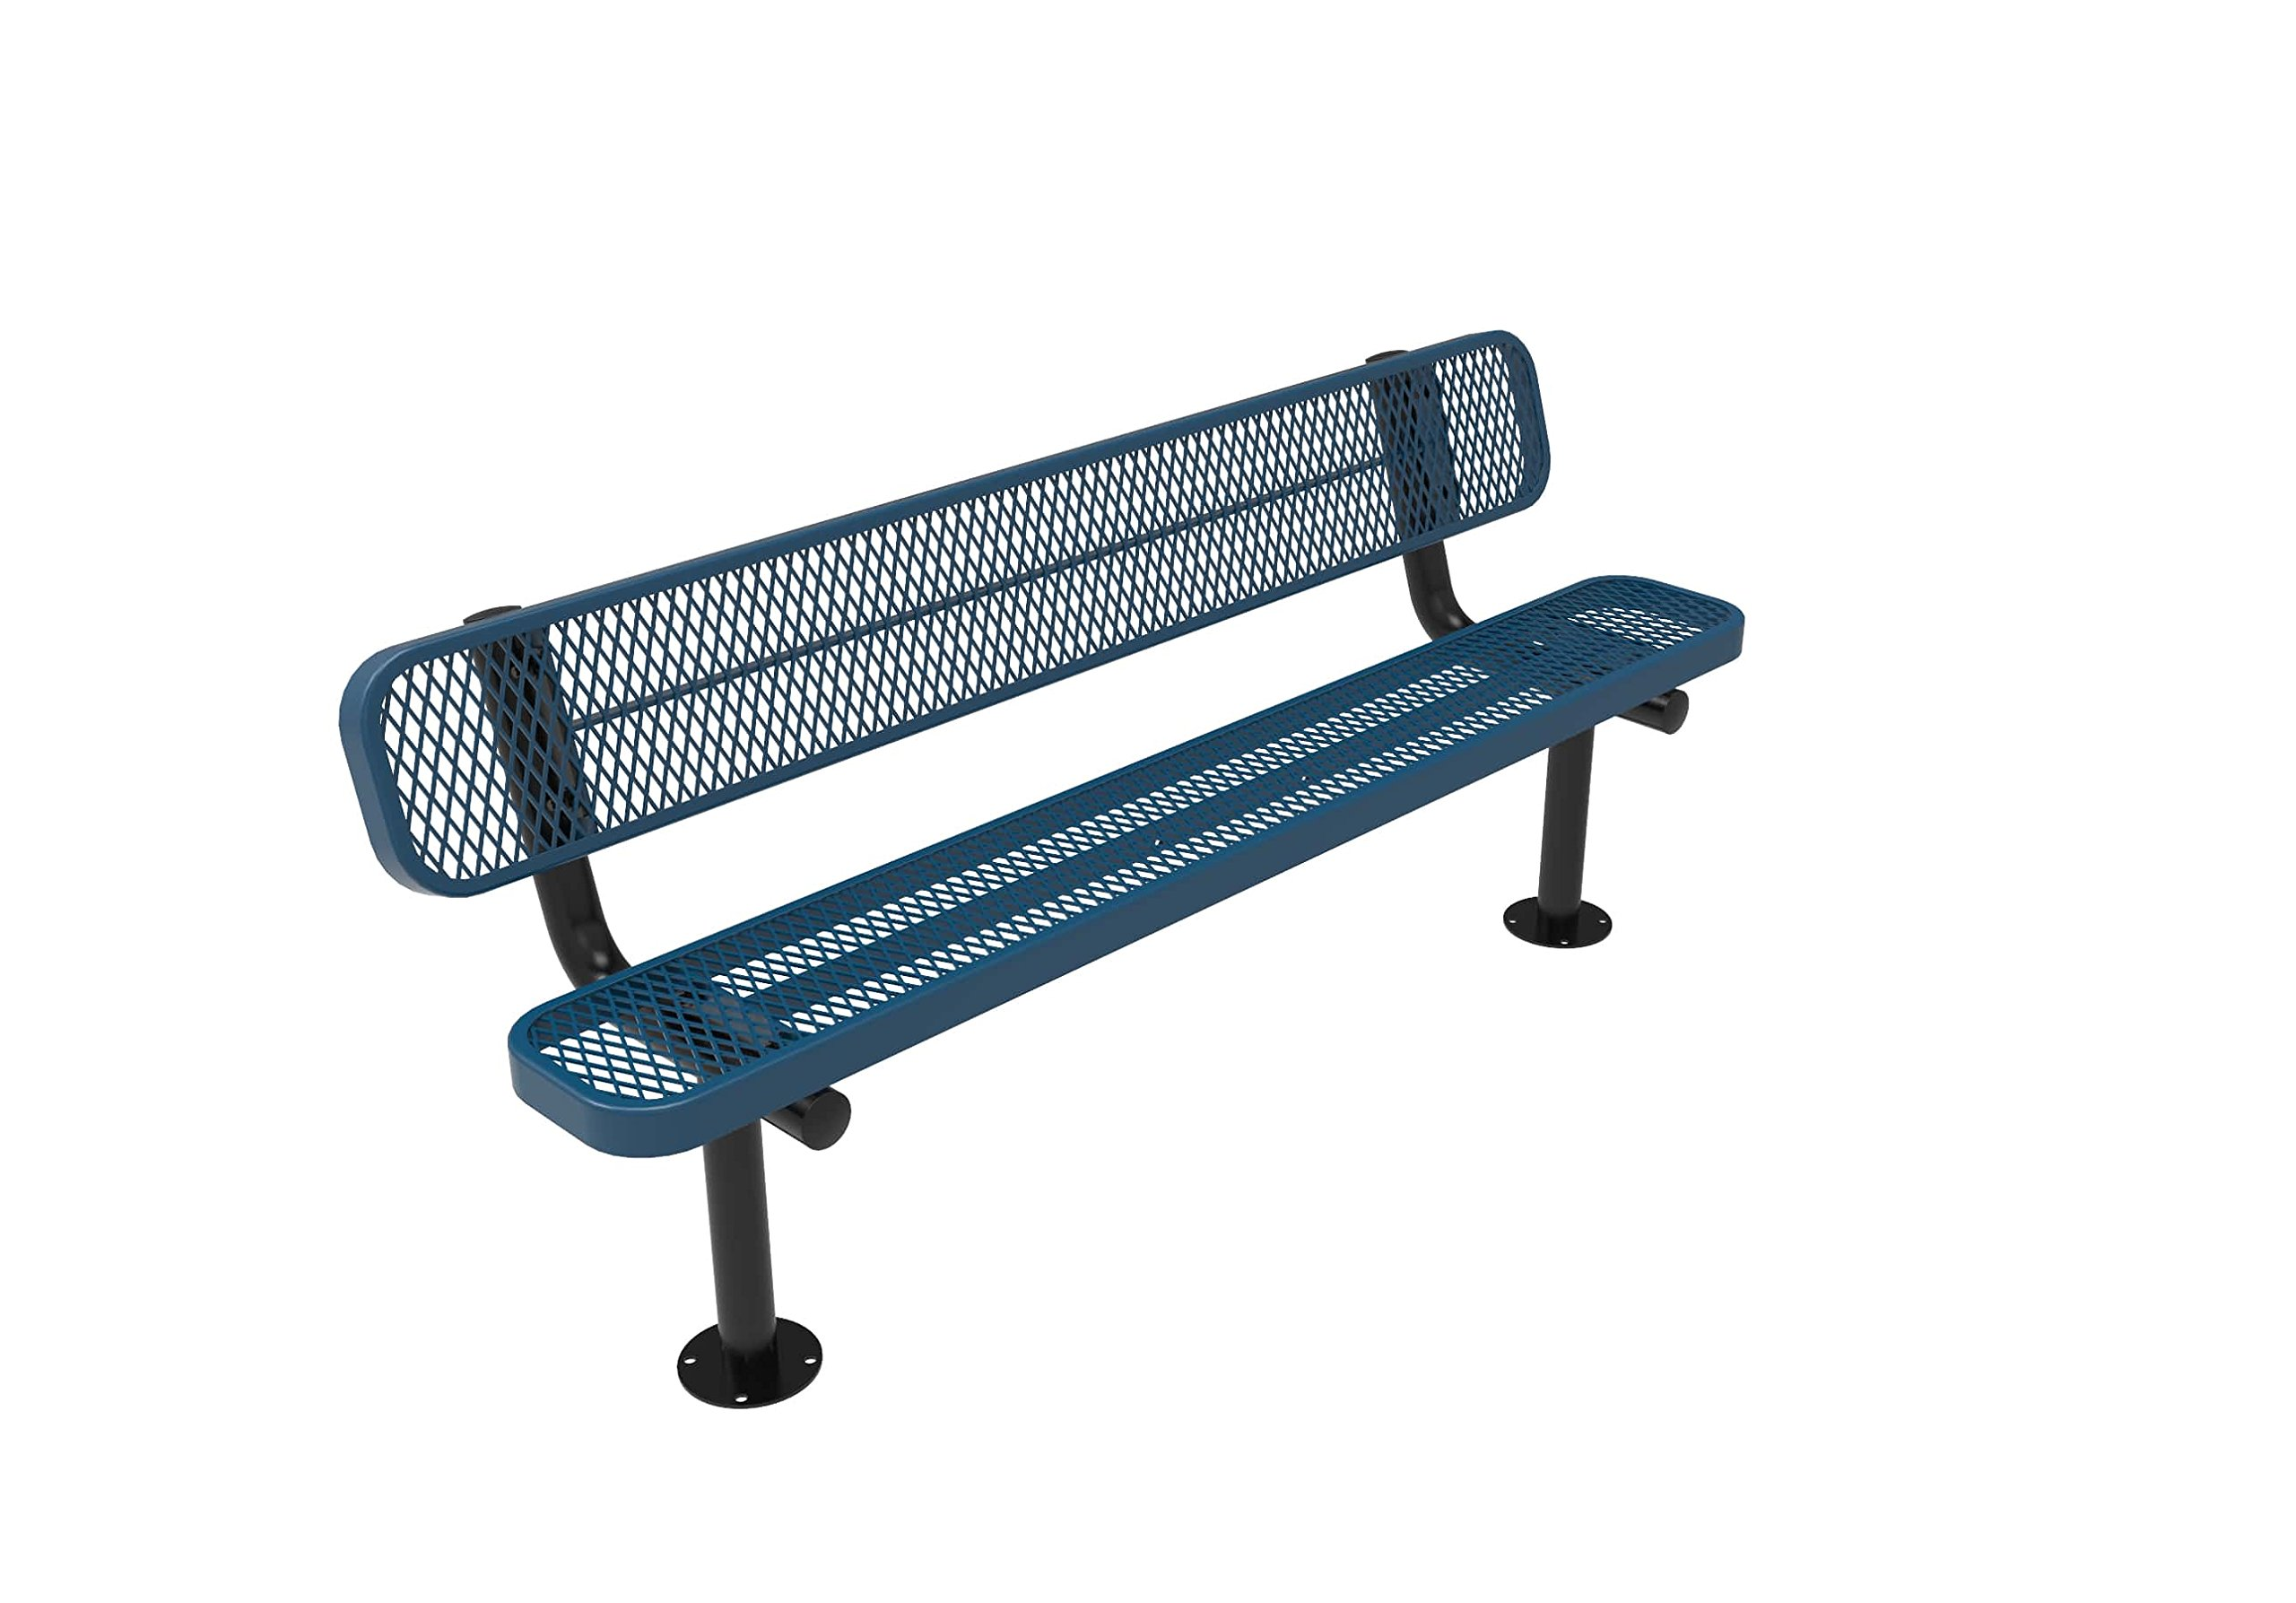 Coated Outdoor Furniture B6WBS-LBL Park Bench with Back, 6 Feet, Light Blue by CoatedOutdoorFurniture